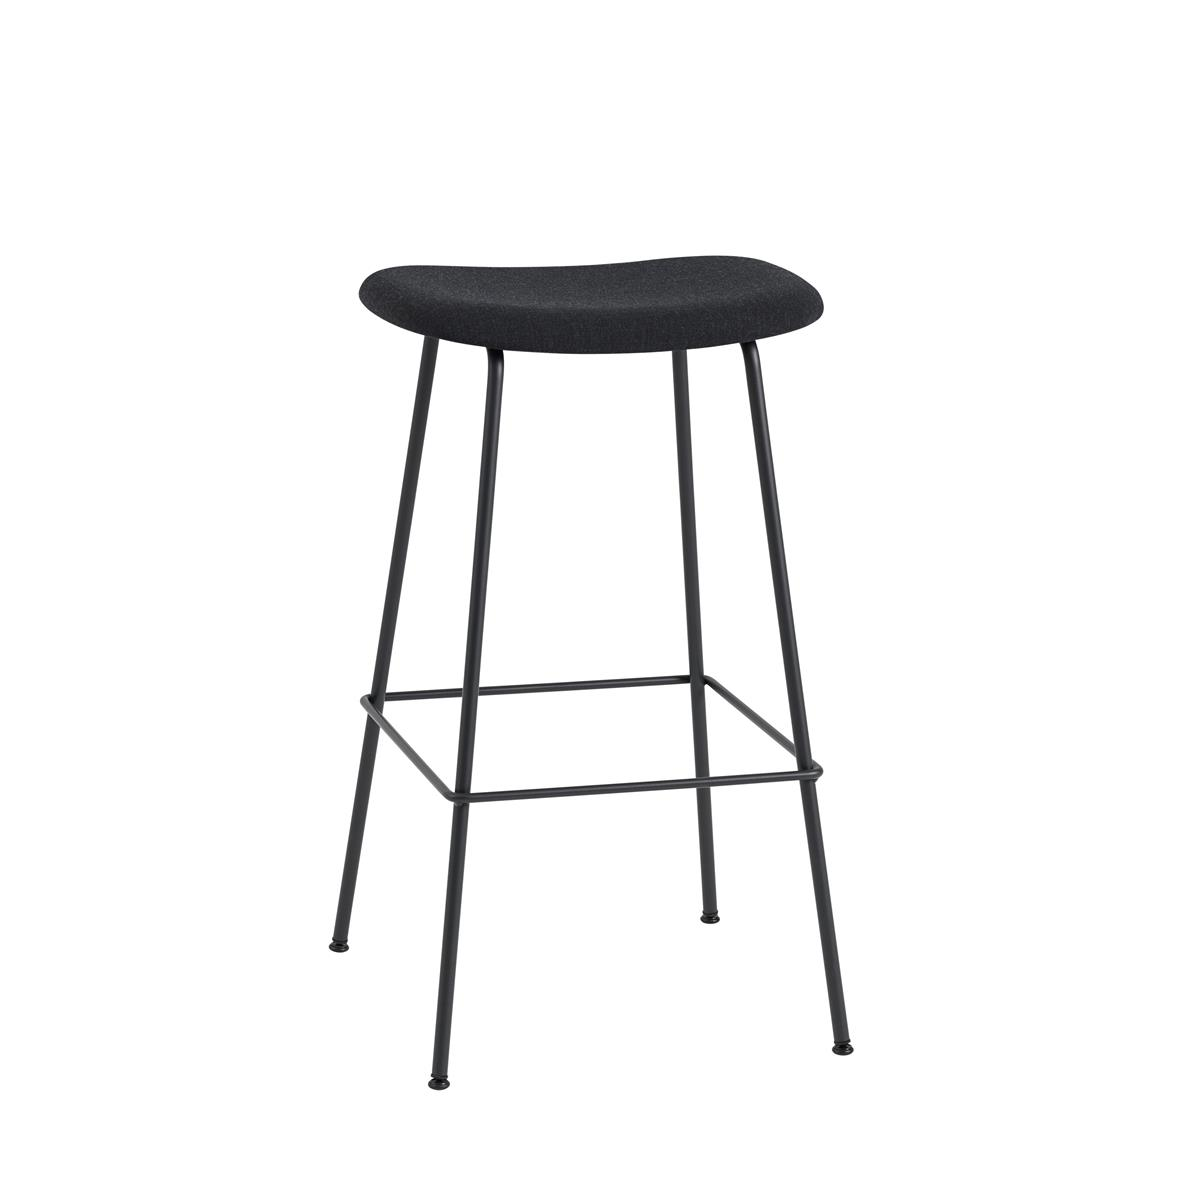 Fiber Bar Stool / Tube Base H75 - Kvadrat Remix & Black